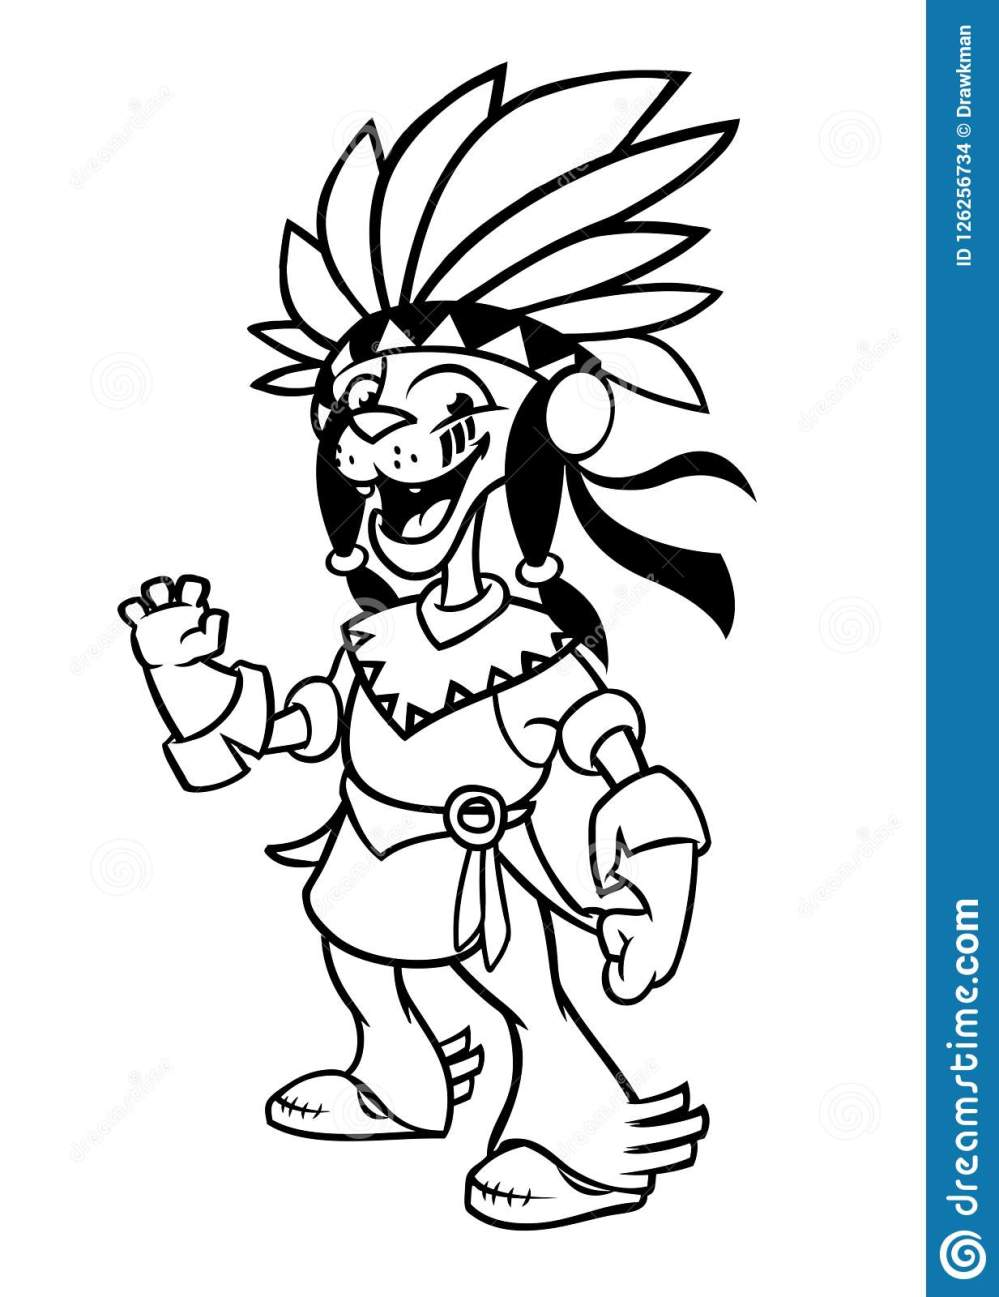 medium resolution of cartoon native american indian character illustration clipart for coloring book